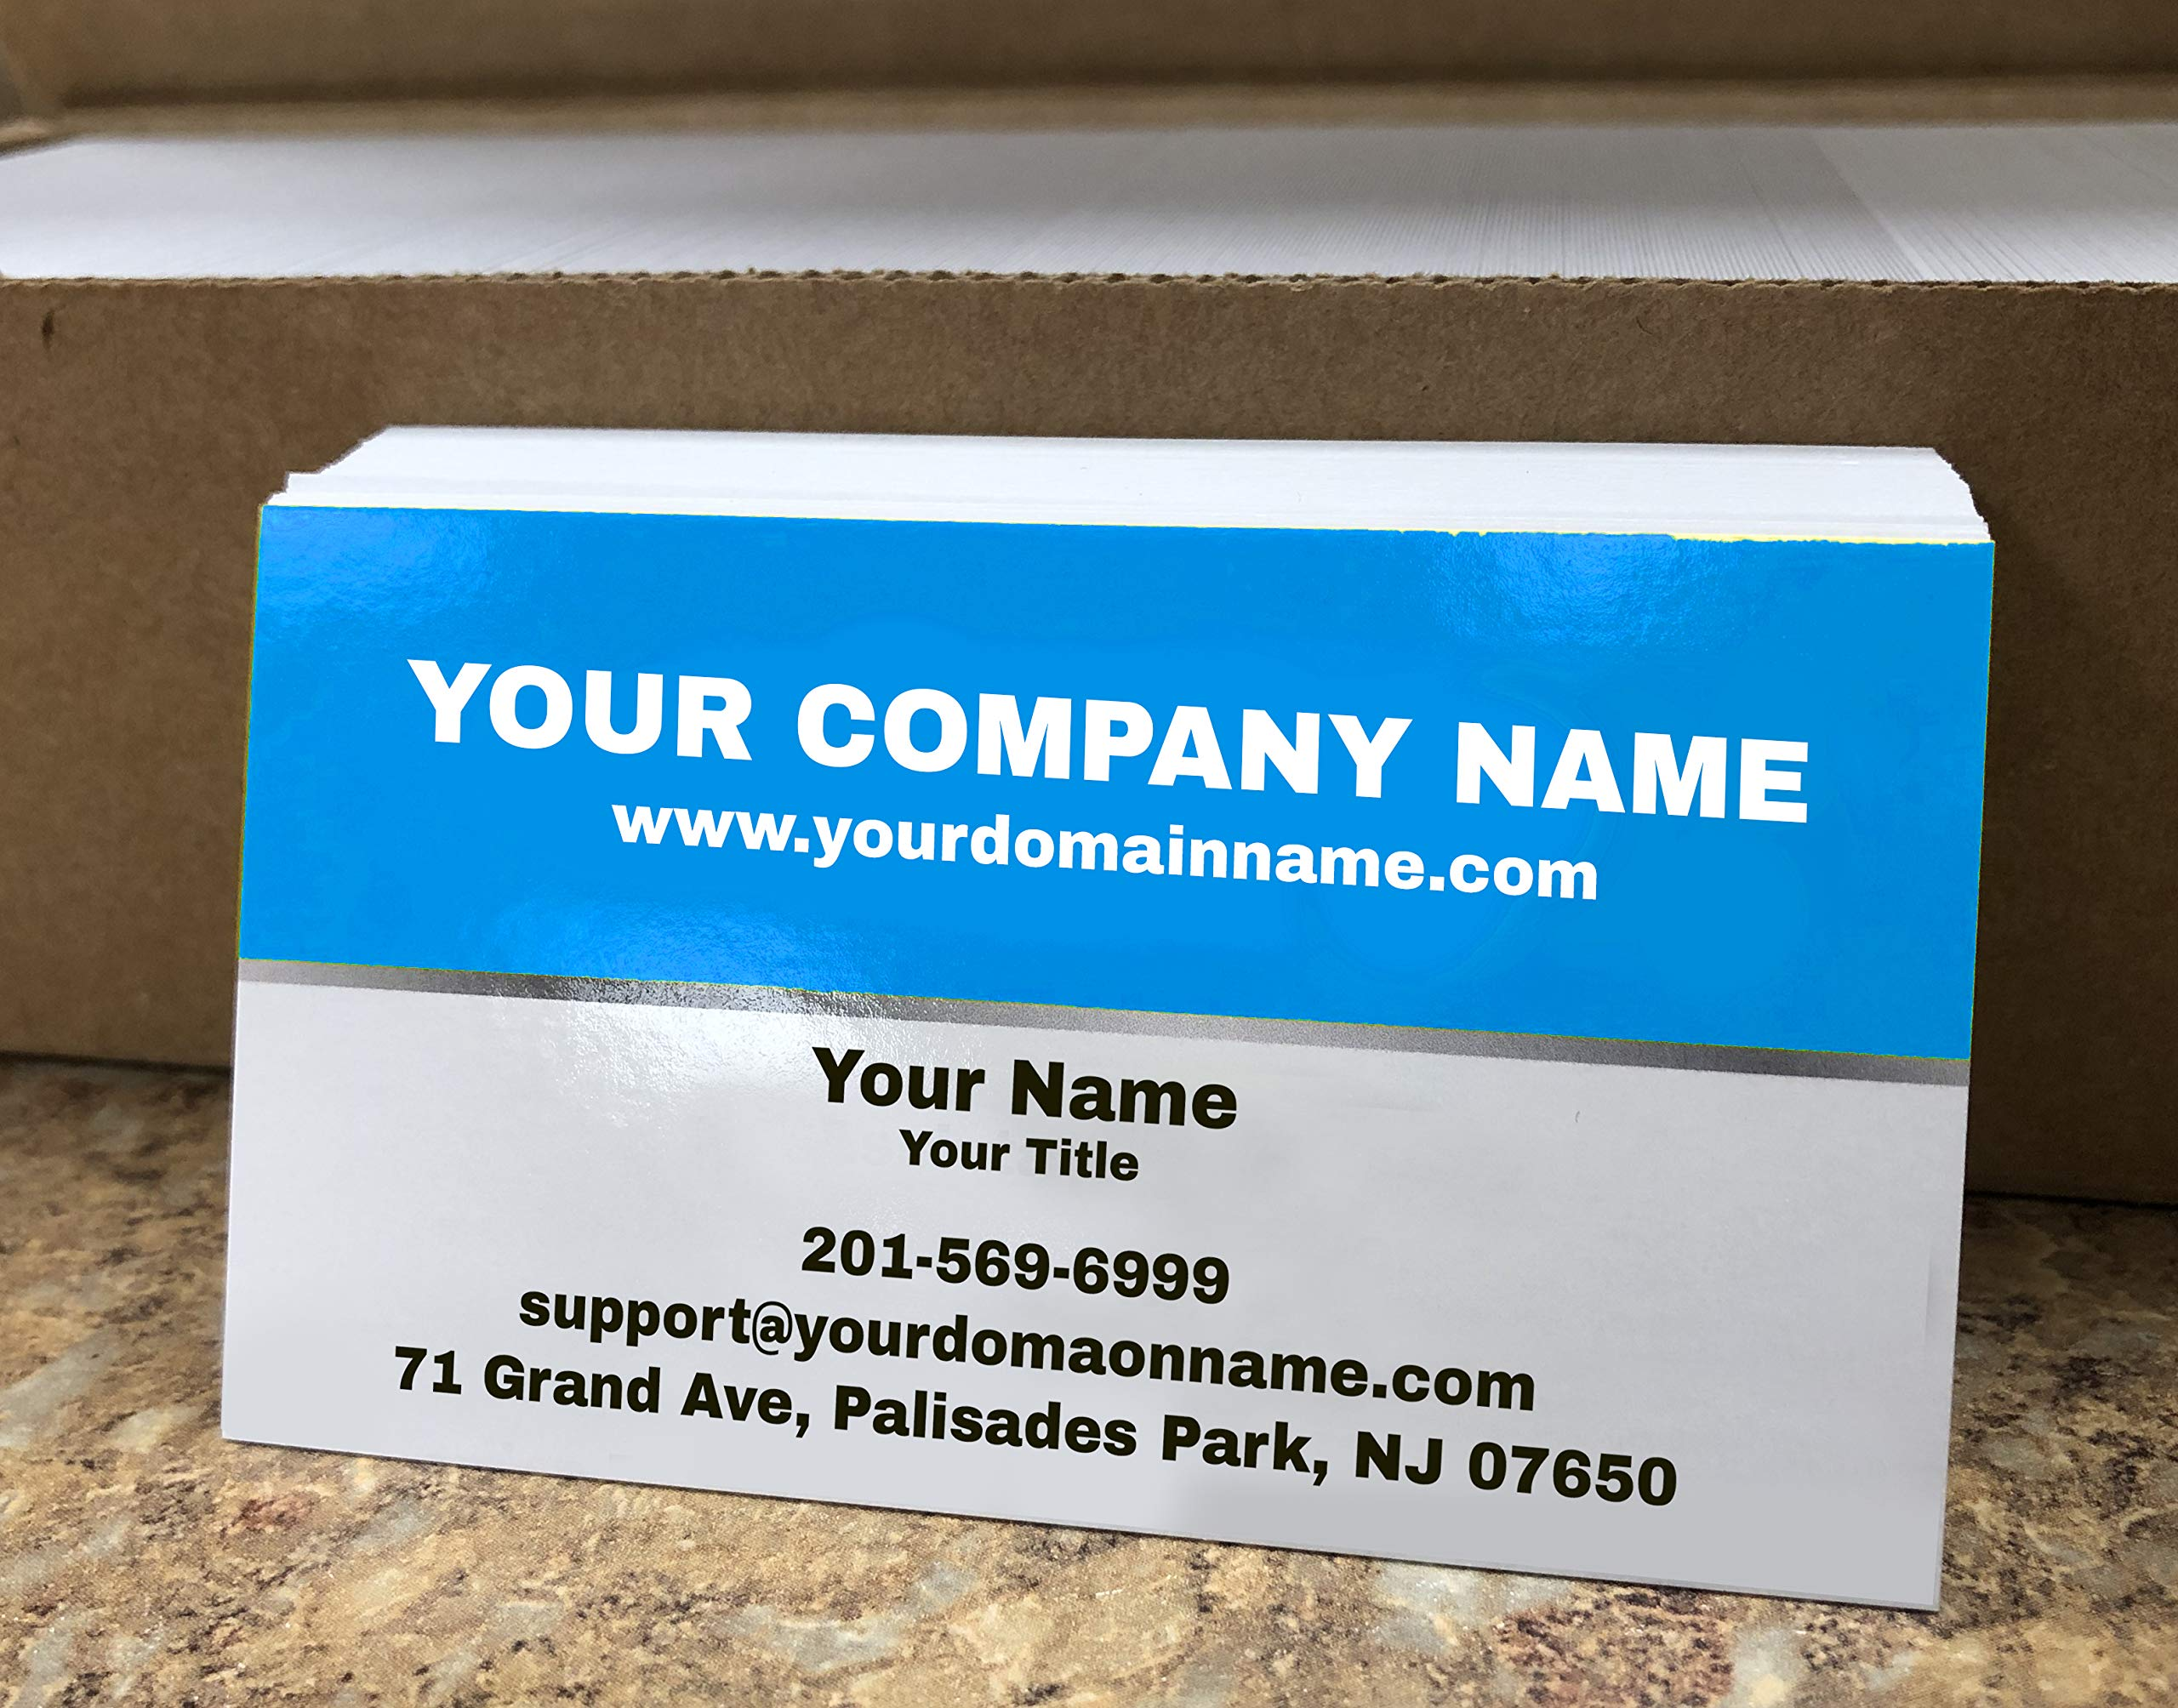 Custom Premium Business Cards 500 pcs Full color - Half Light Blue (129 lbs. 350gsm-Thick paper), UV coating-Front, Matte finishing-Back, Offset Printing, Made in The USA (Light Blue)